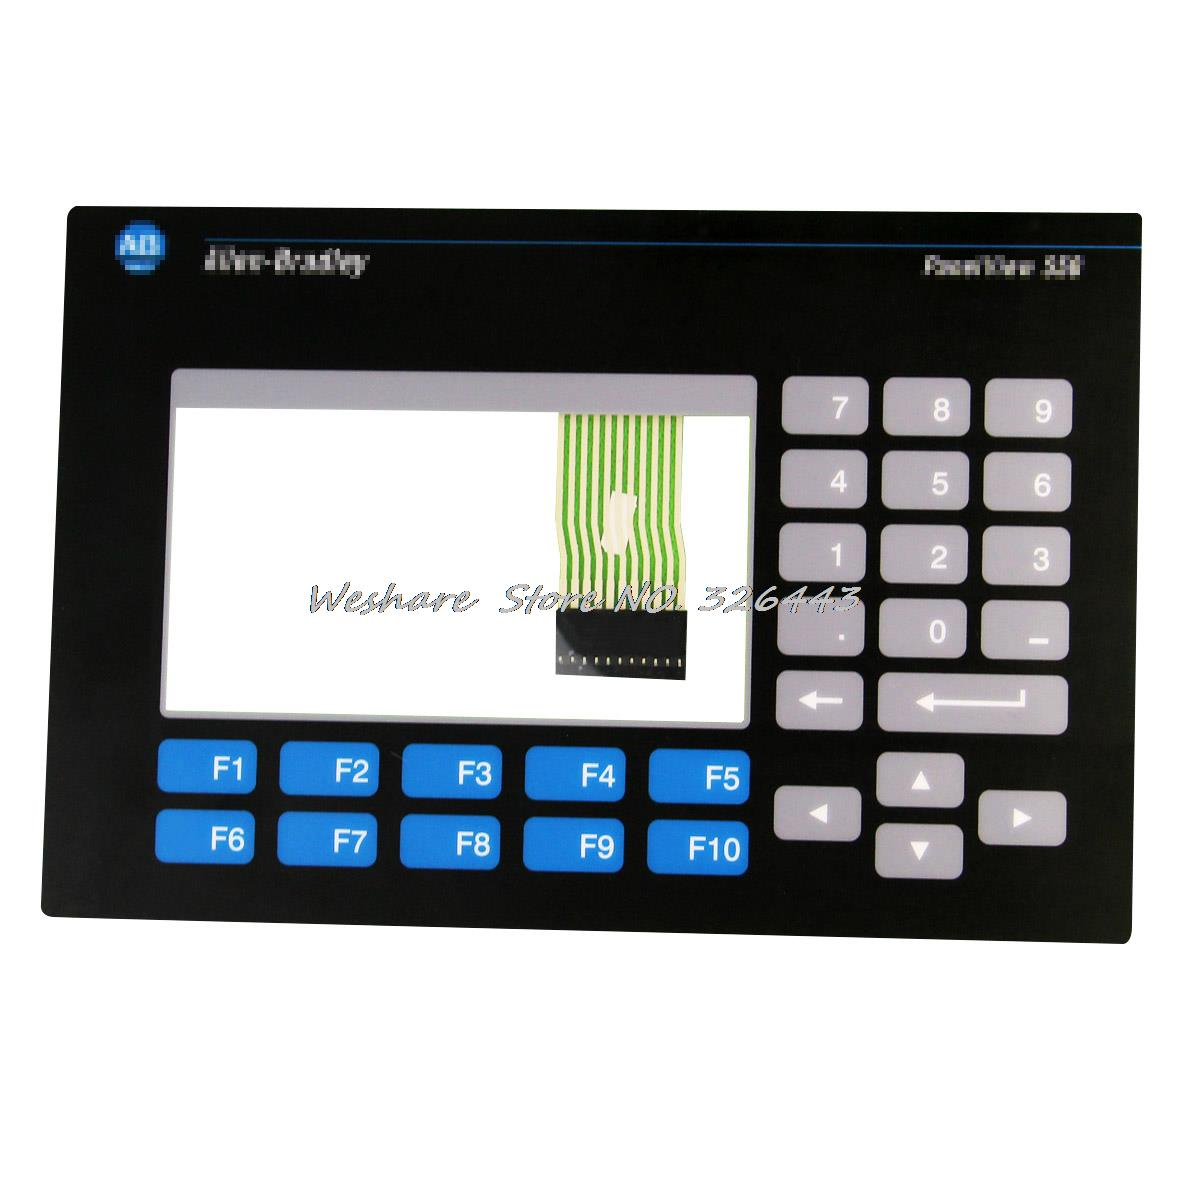 Hot Sale Allen-Bradley Panelview 550 2711-B5A3 2711-B5A5 Membrane Keypad + Touch Panel new industrial membrane switch keypad 2711p k10c4d2 for ab allen bradley panelview plus 1000